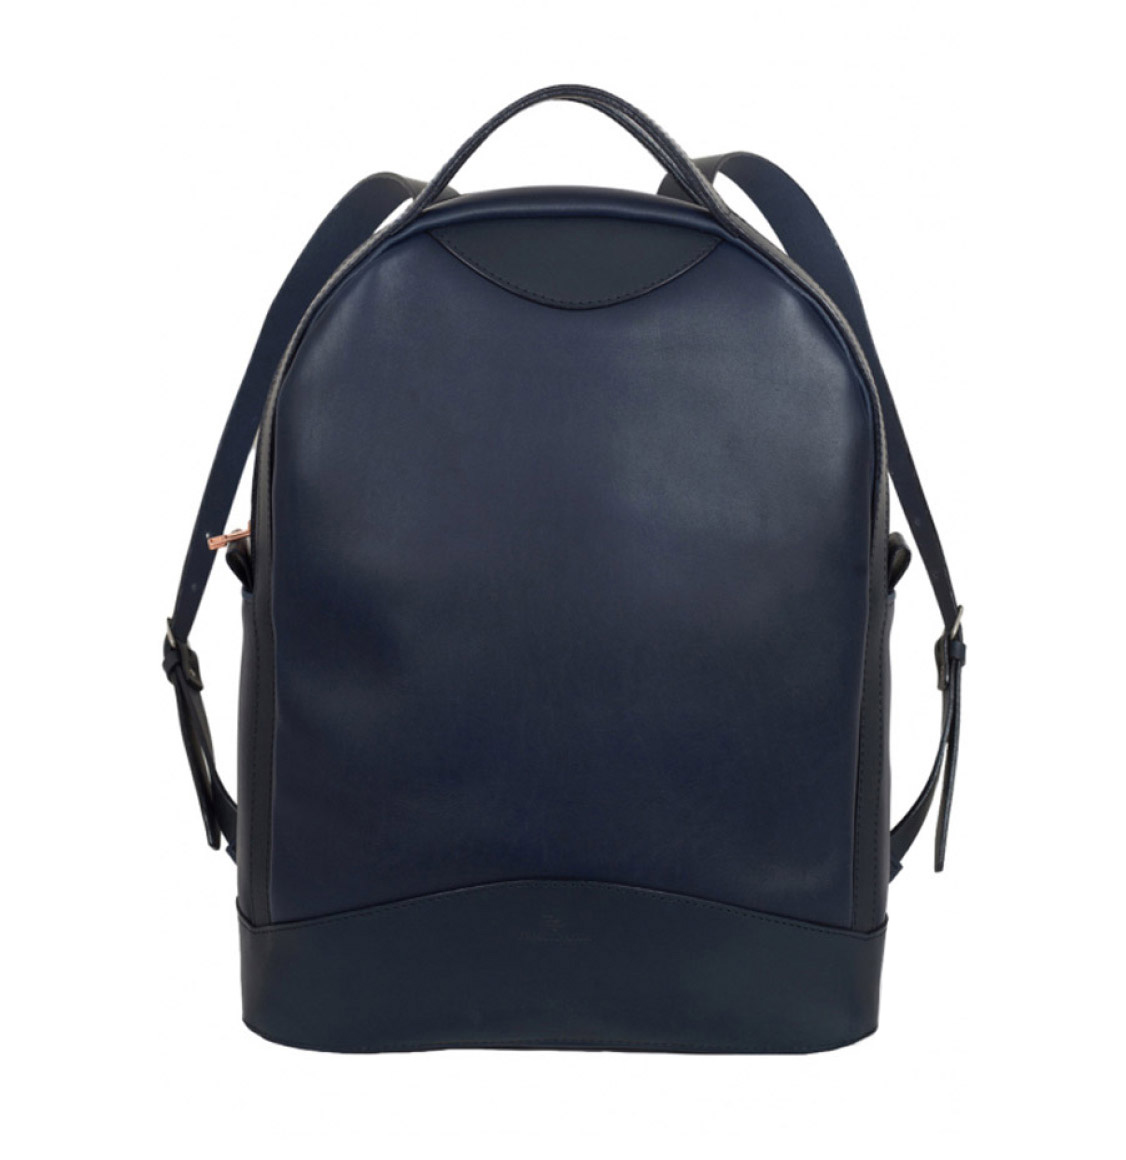 Atelier De L' Armee Voyager Pack Leather Navy